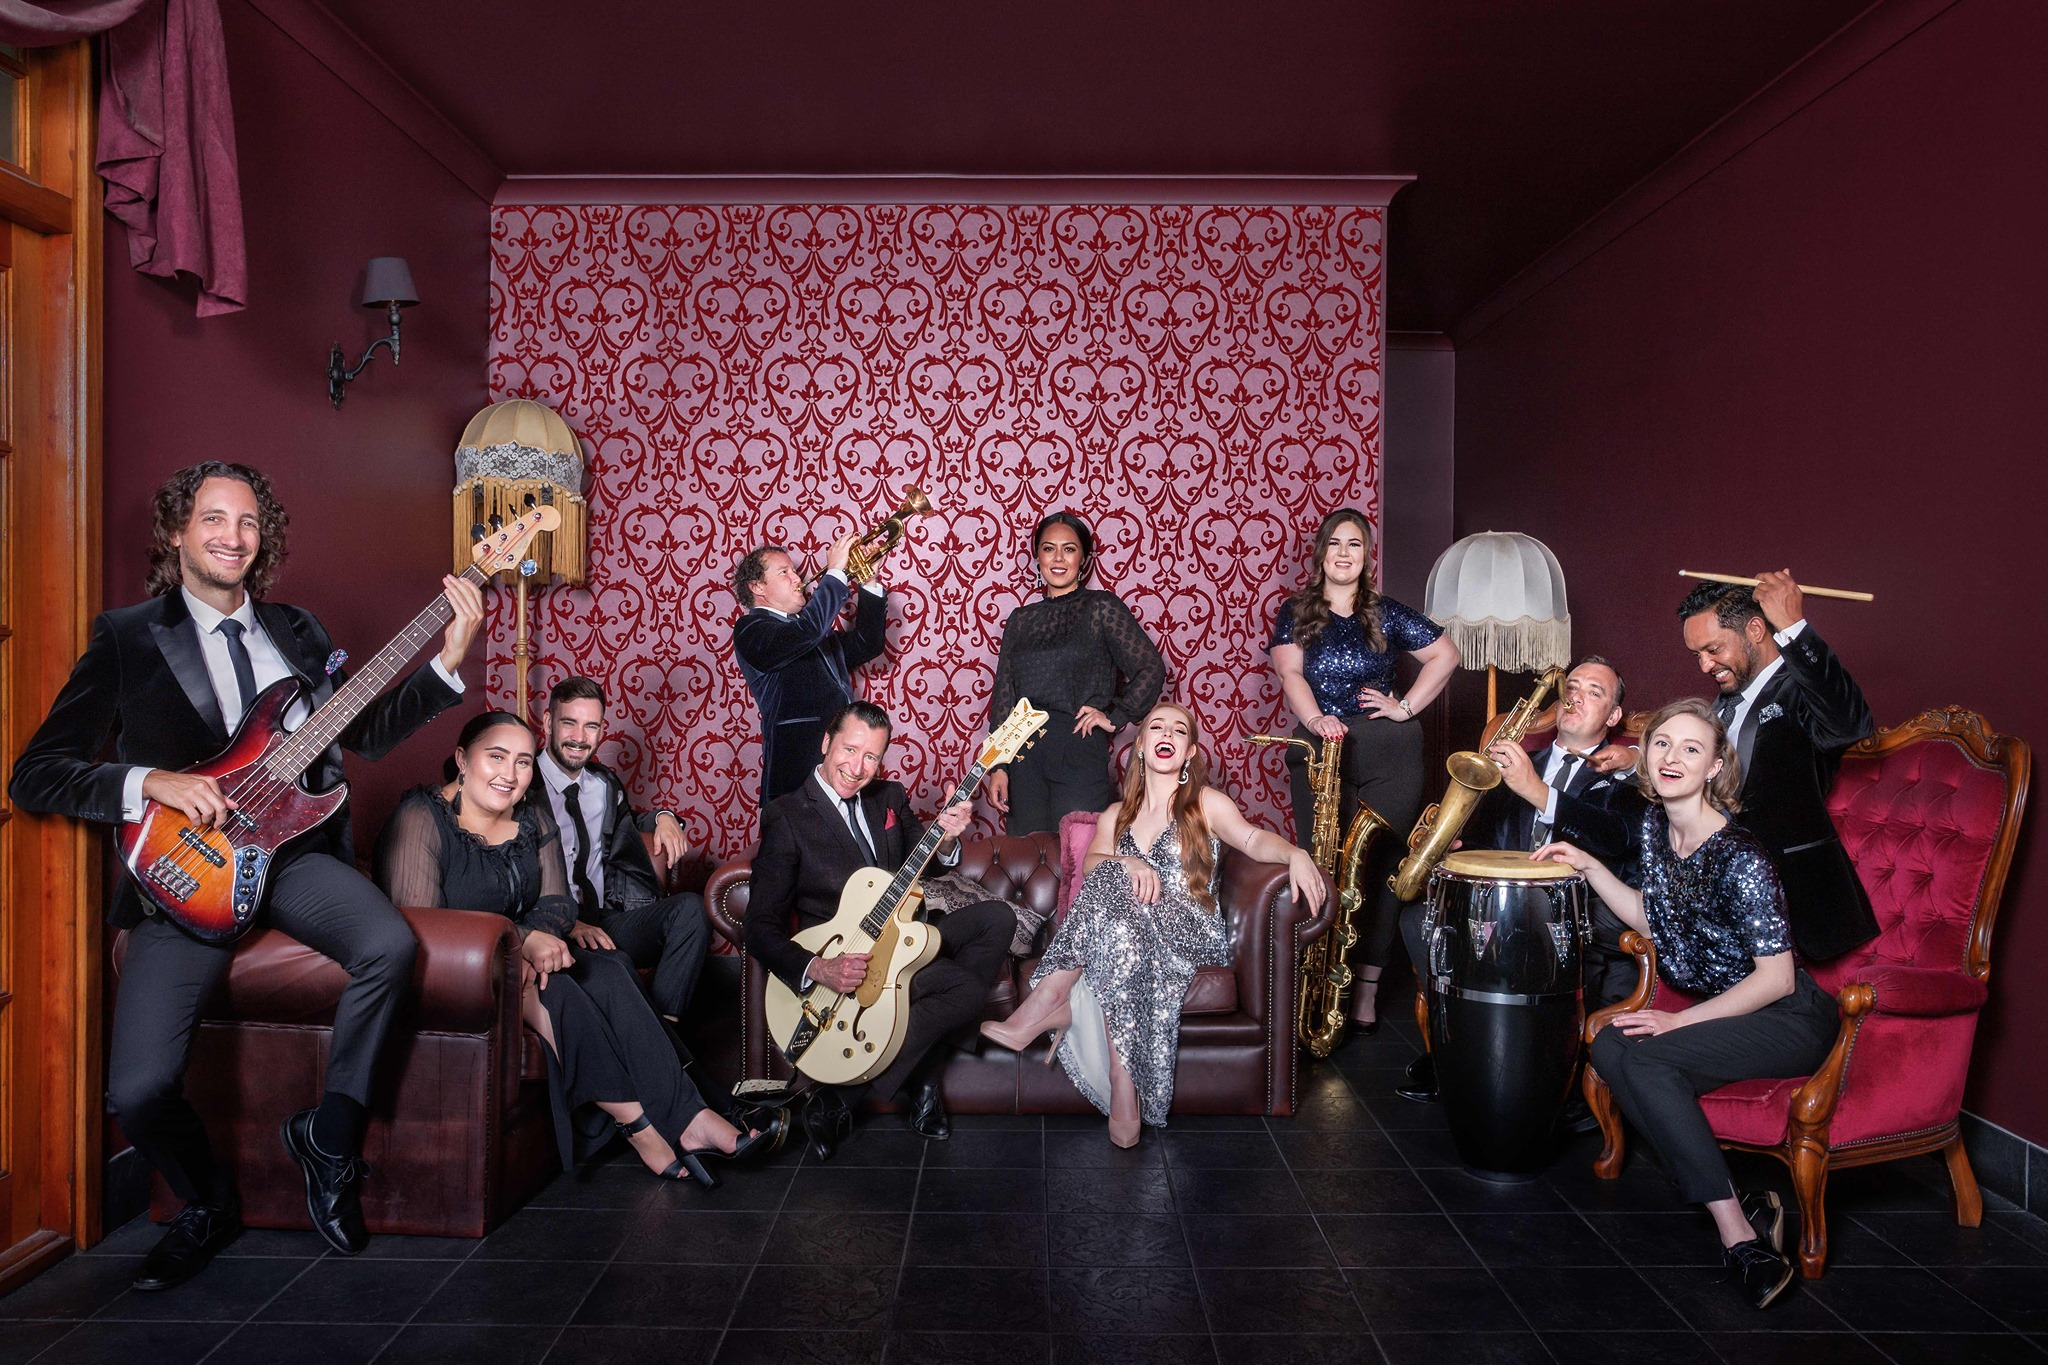 The Milford Street Shakers are bringing a little bit of Soul to Christmas